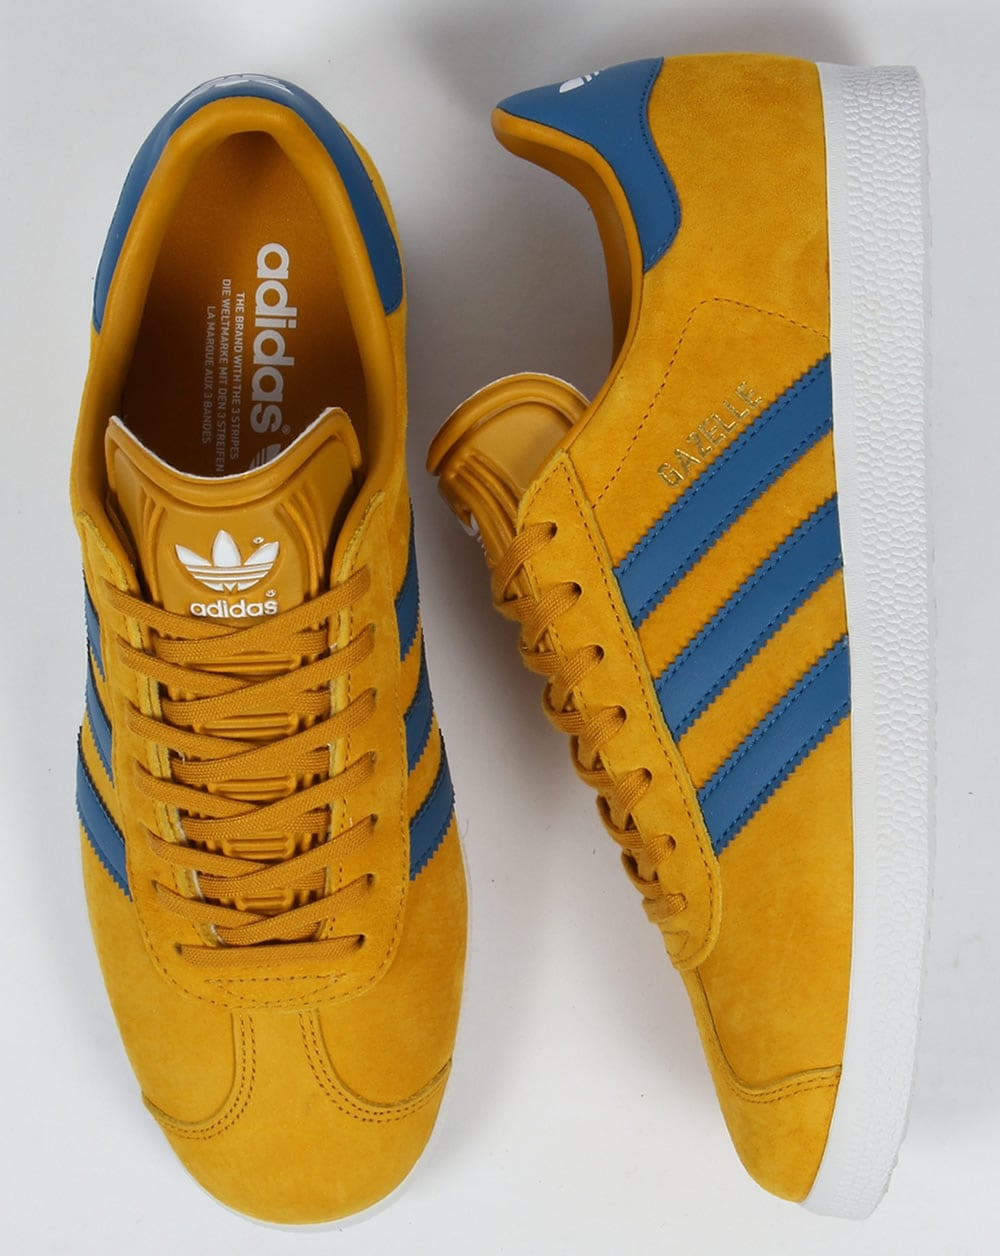 Adidas Gazelle Trainers Golden YellowBlue